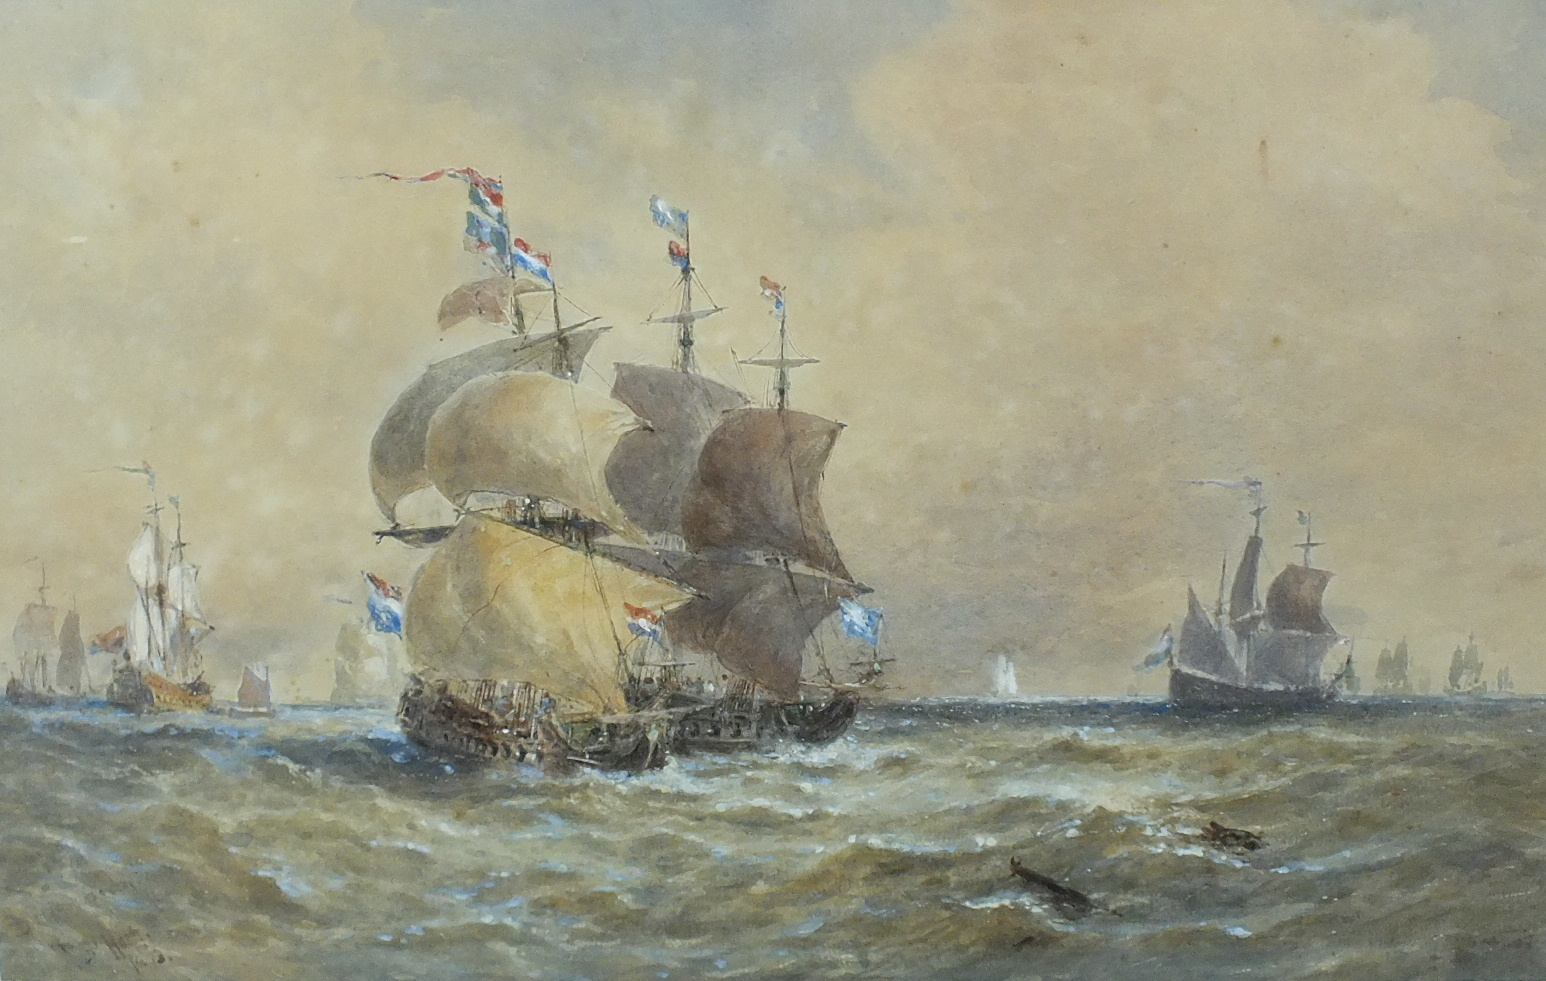 Lot 84 - 19th century DUTCH MEN OF WAR AT SEA Indistinctly-signed watercolour, 31 x 49cm, (faded).